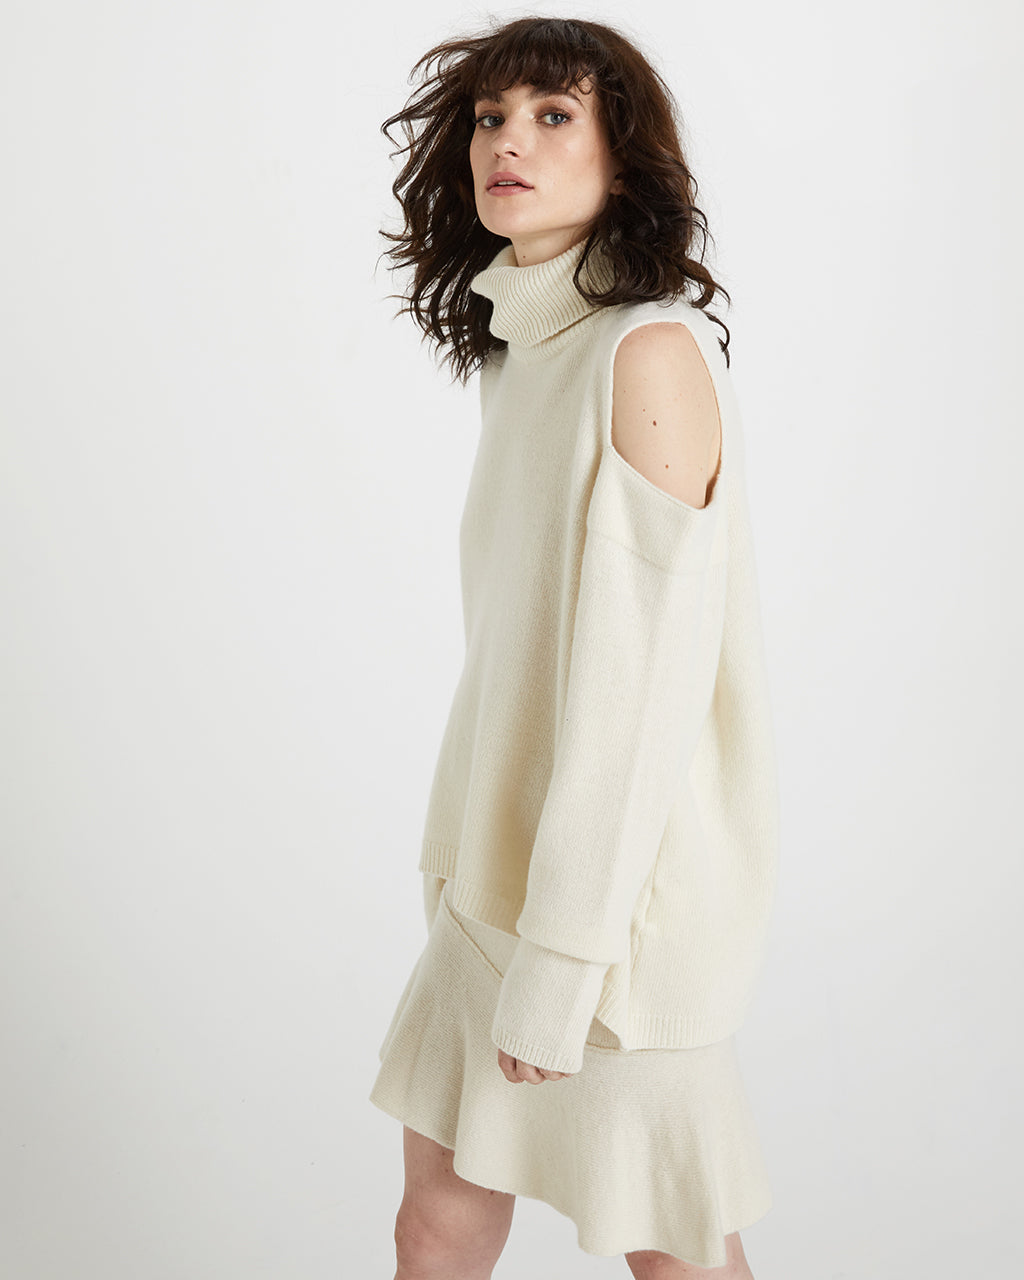 Samples & Seconds - Cold Shoulder Knit Top - Cream